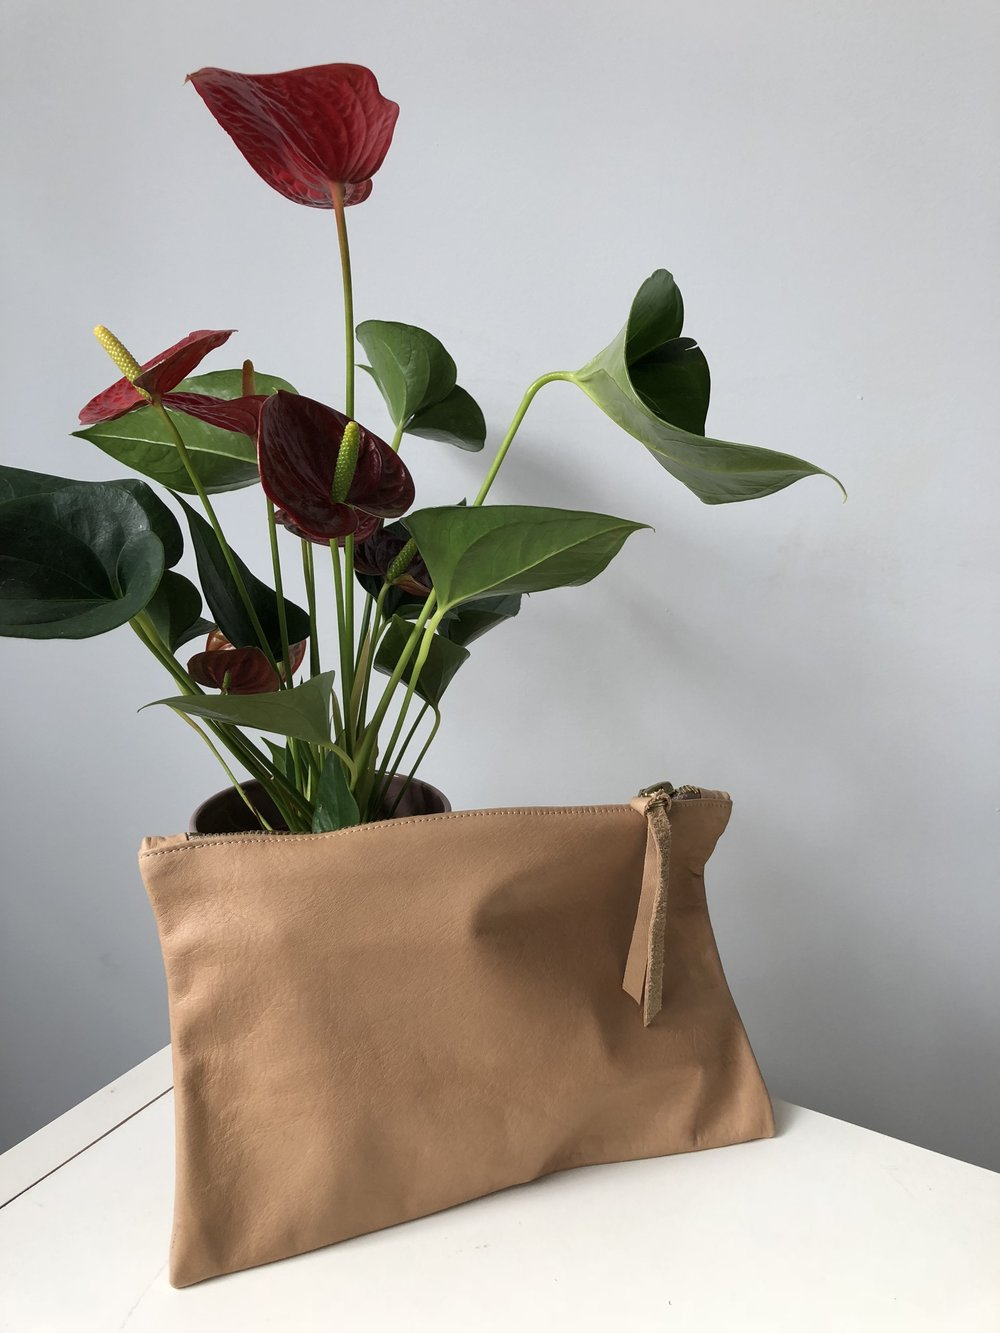 Vintage Bags - Whether a nice leather pouch, a unique beaded purse or a designer vintage bag. There's a range of options out there that you'll be surprised to find.